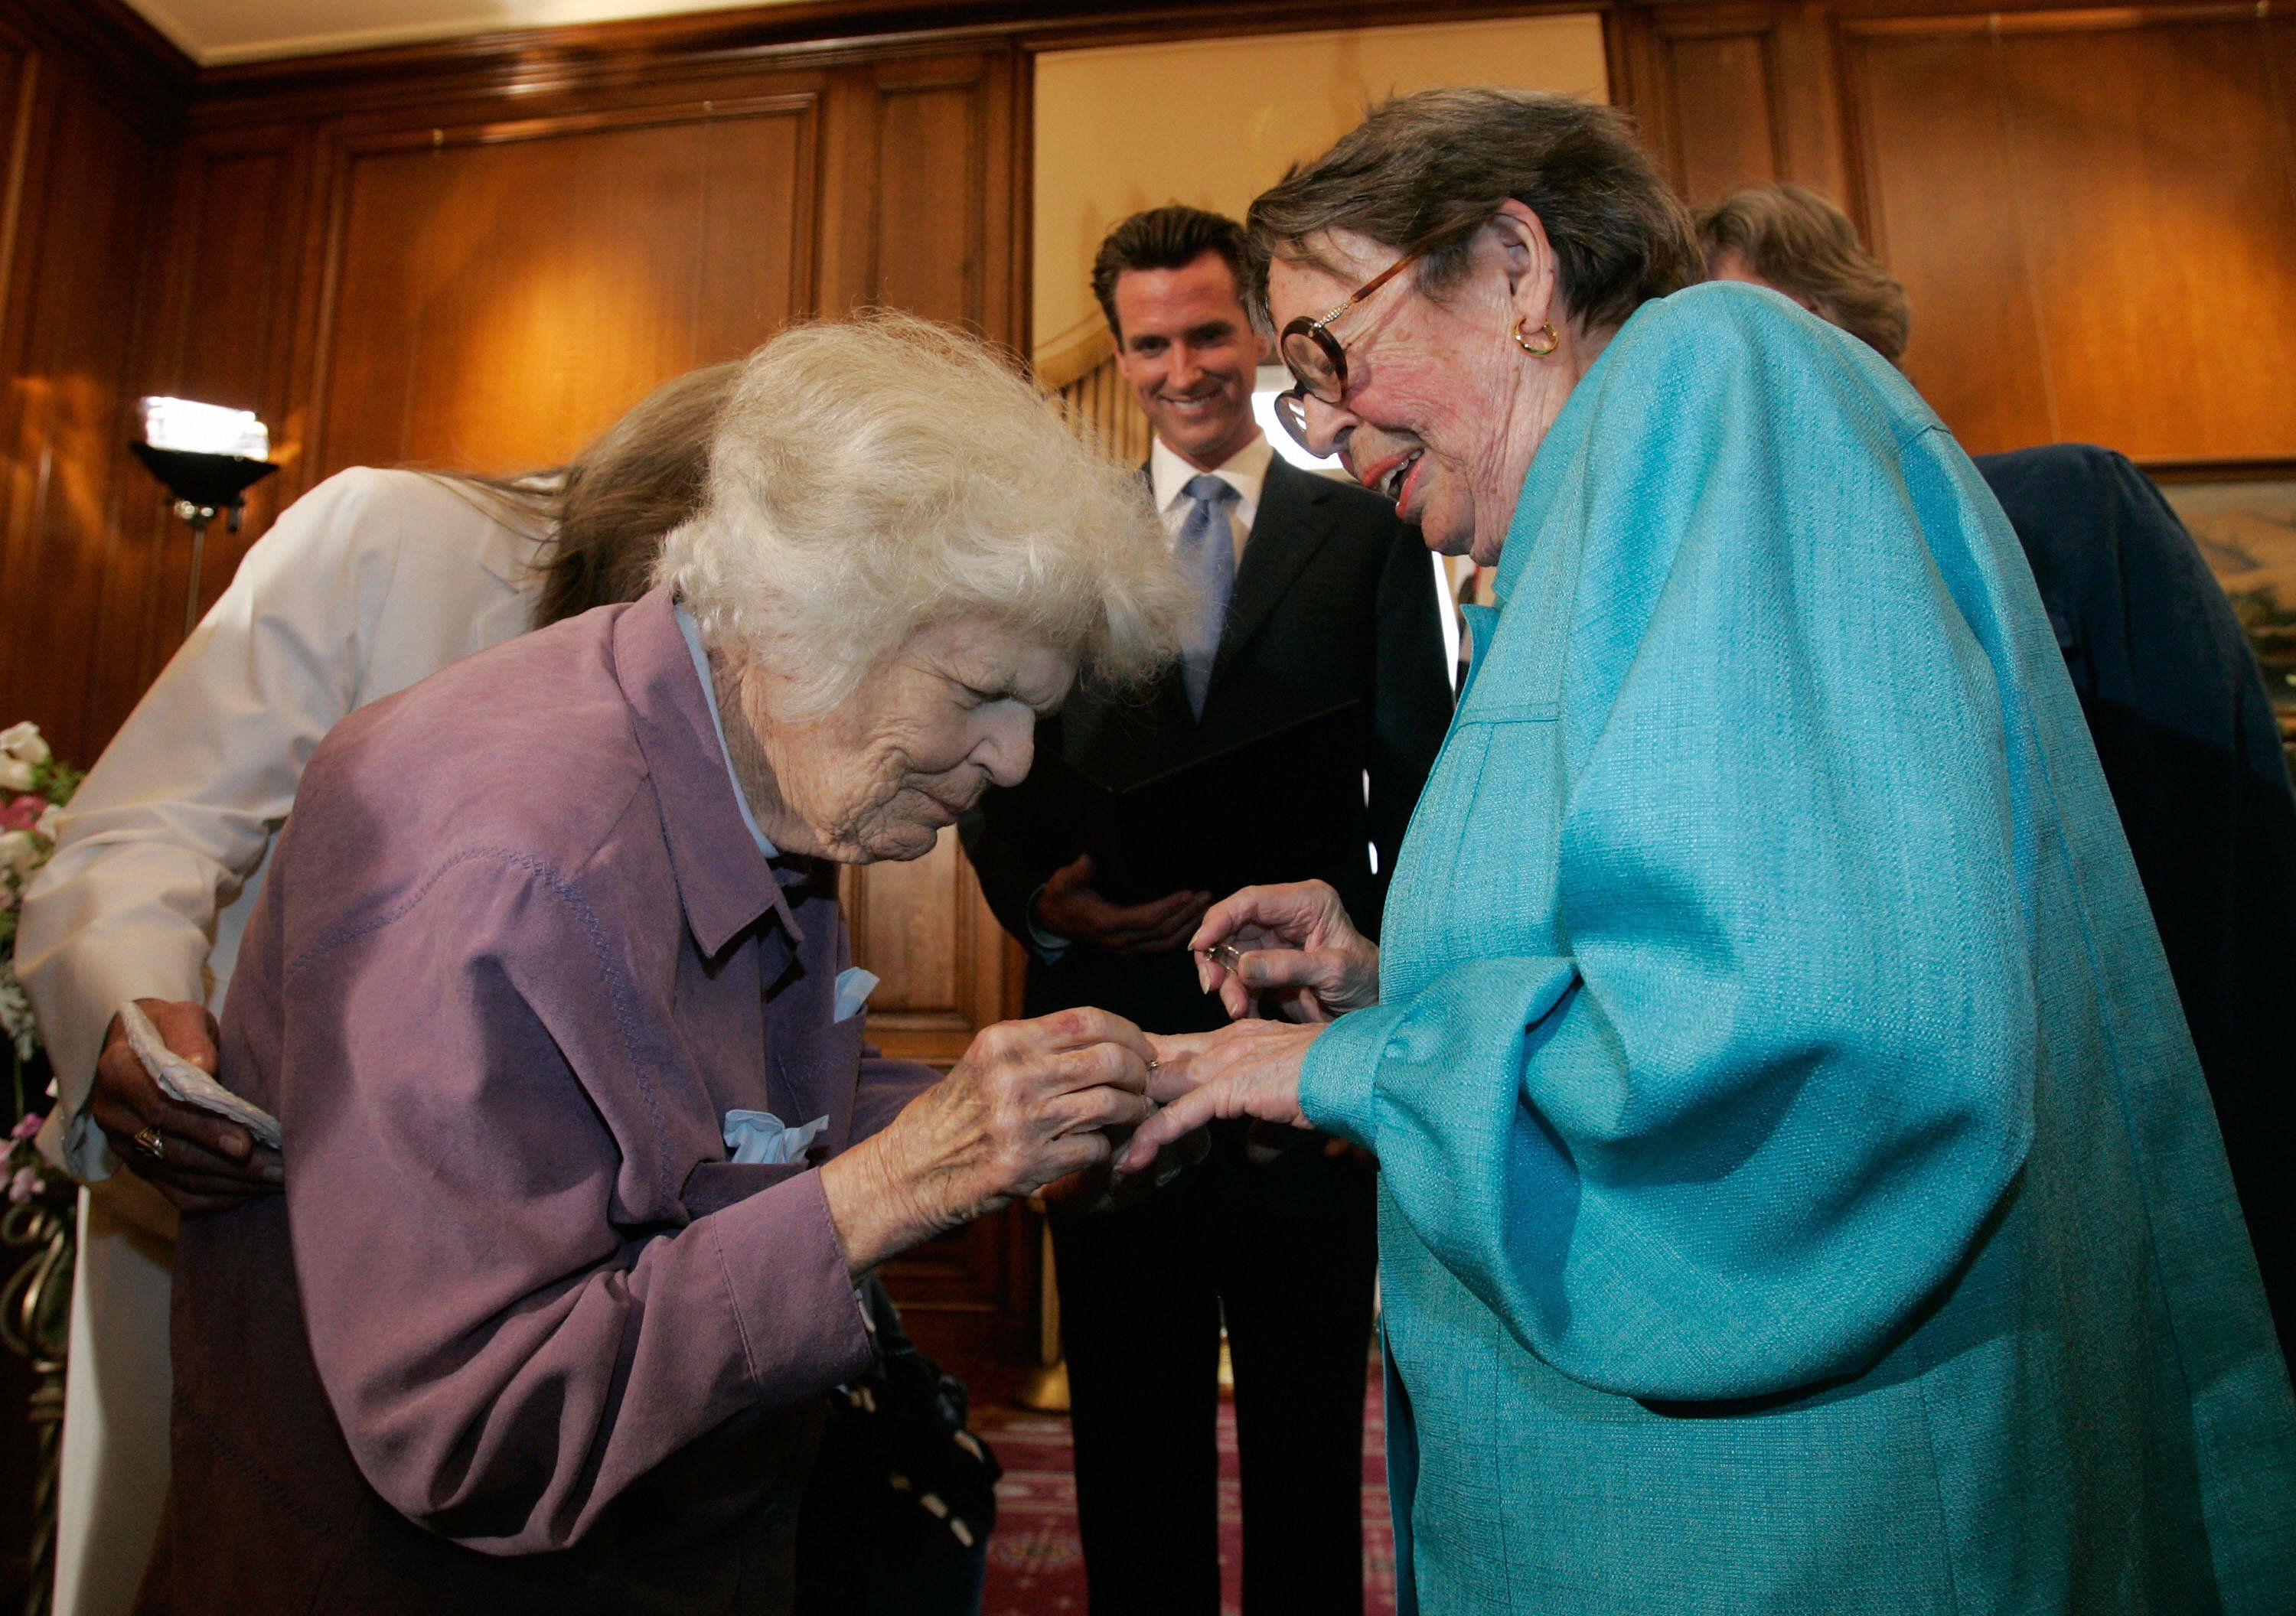 Same-sex couple Del Martin (L) and Phyllis Lyon (R) exchange rings as they are married by San Francisco mayor Gavin Newsom in a private ceremony at San Francisco City Hall June 16, 2008 in San Francisco, California. Martin and Lyon were the first couples to be married in San Francisco as same-sex marriages become legal  in California.     AFP PHOTO / POOL / Marcio Jose Sanchez (Photo credit should read Marcio Jose Sanchez/AFP/Getty Images)